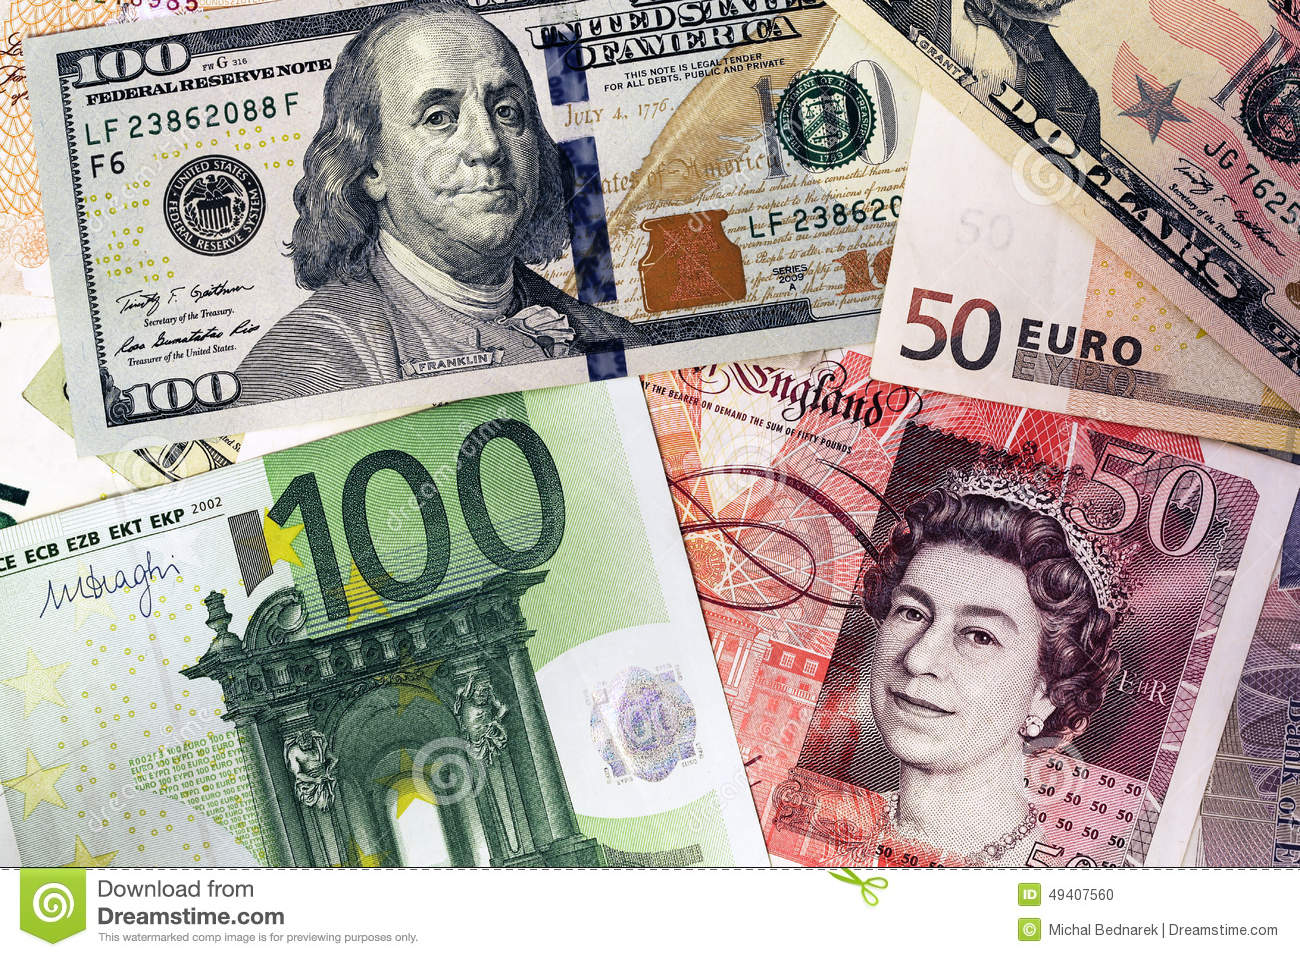 Libras Esterlinas Euros Mix Of Currencies Banknotes Dollar Pound Sterling Euro